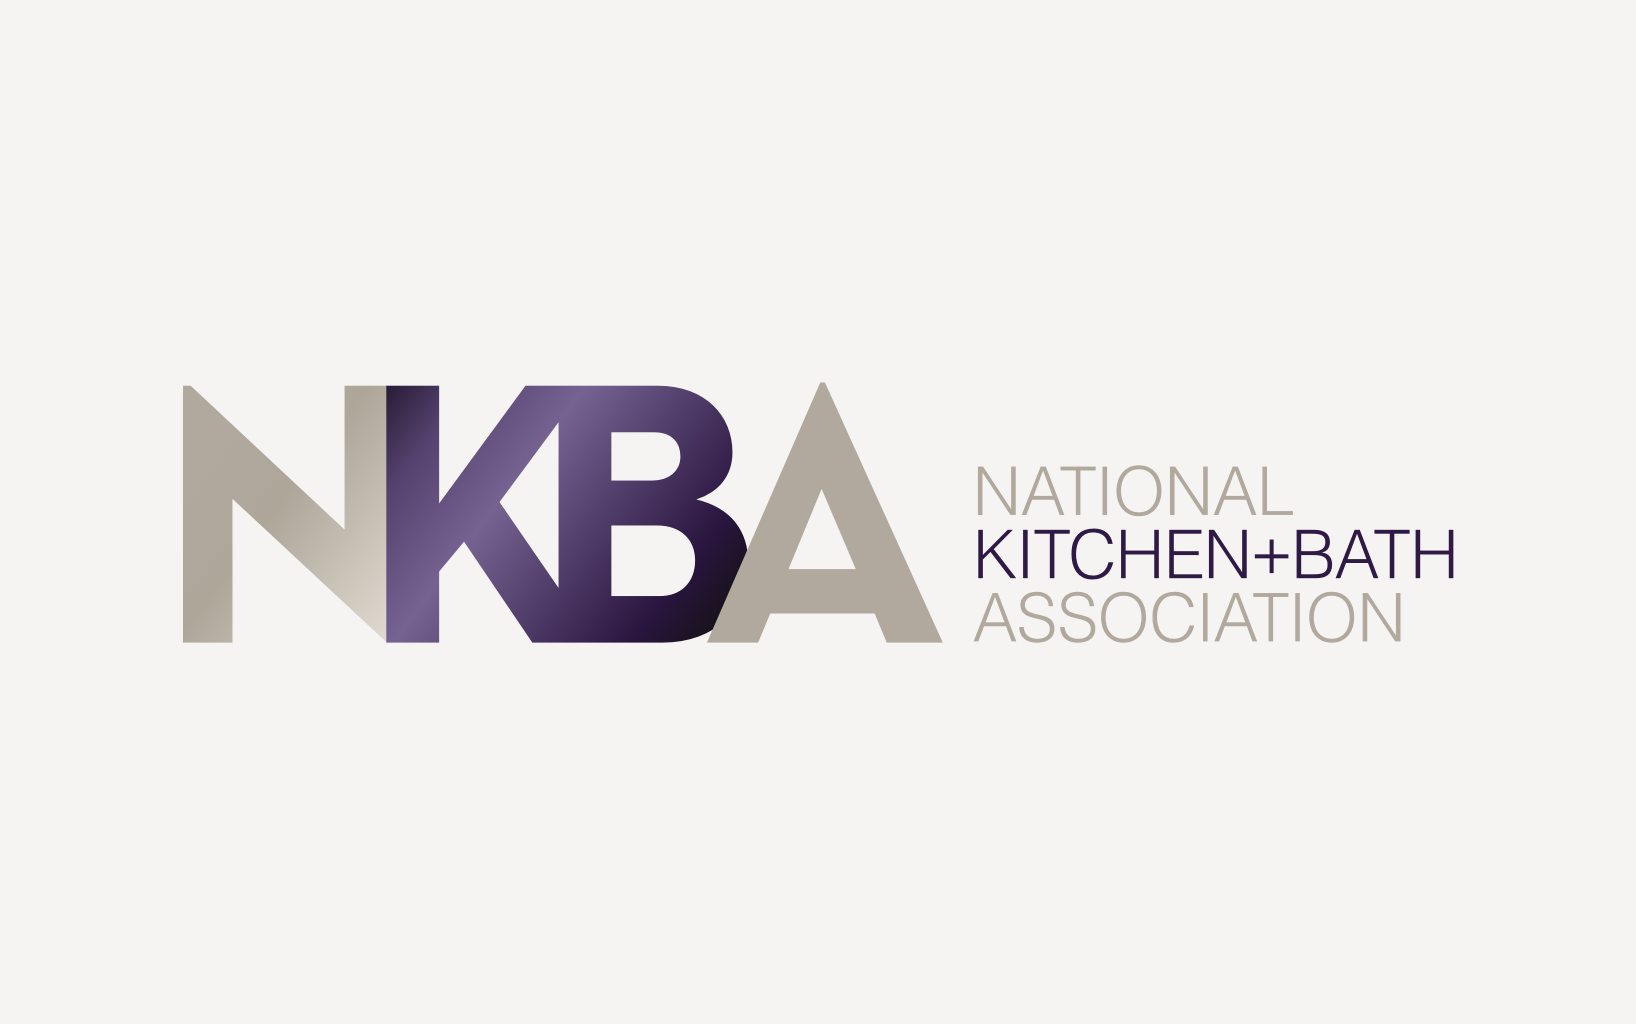 Kitchen and Bathroom Ideas, Photos, Designers & Pros - NKBA